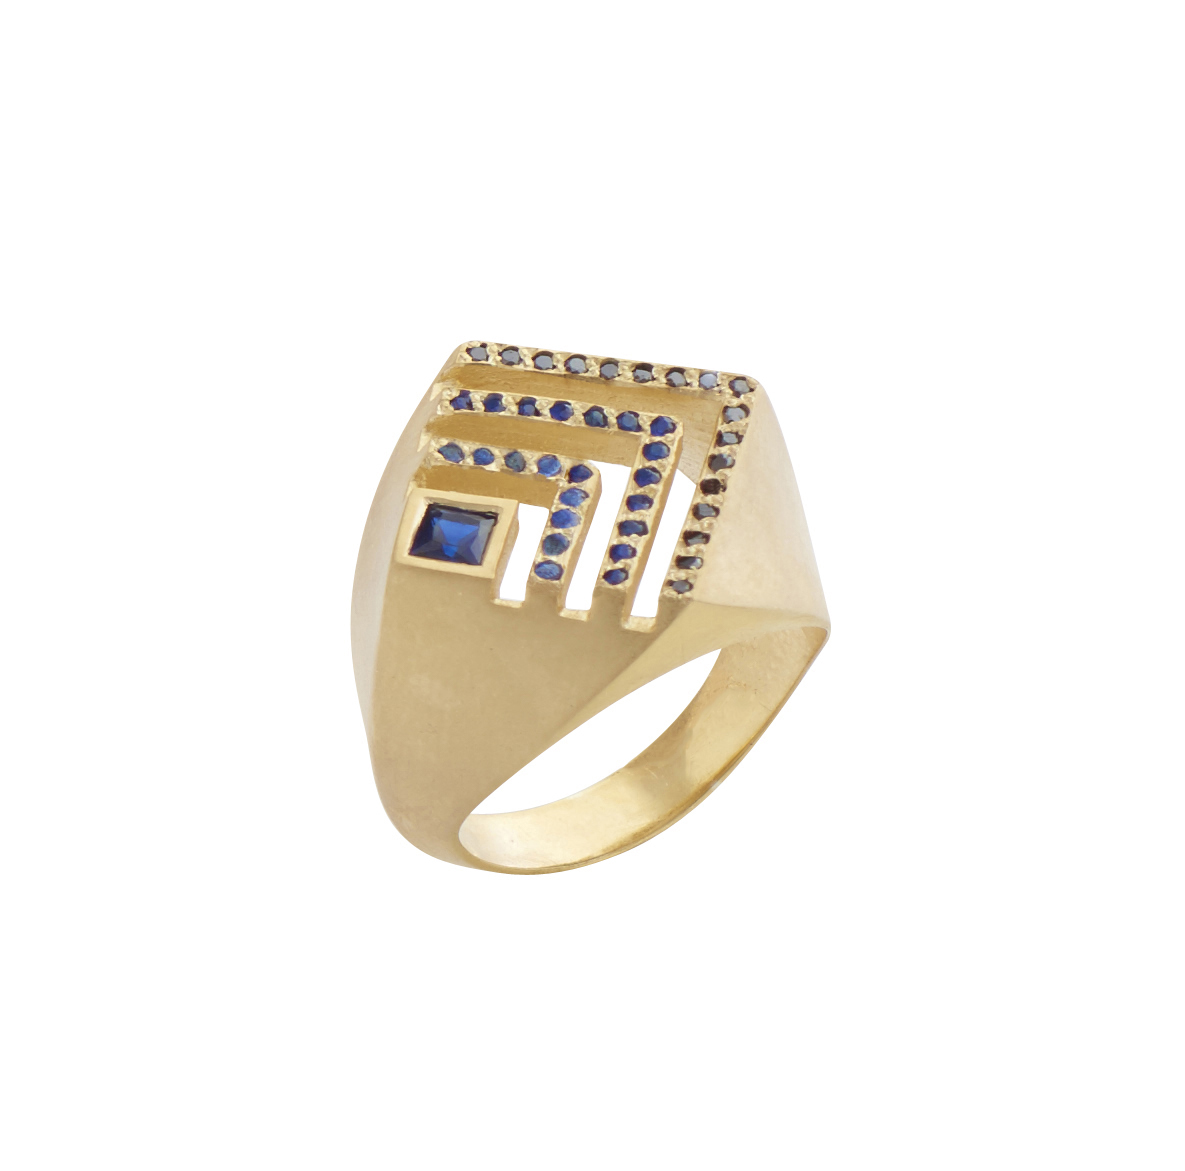 Flora Bhattachary Baoli Ring in Sapphire and Black Diamond